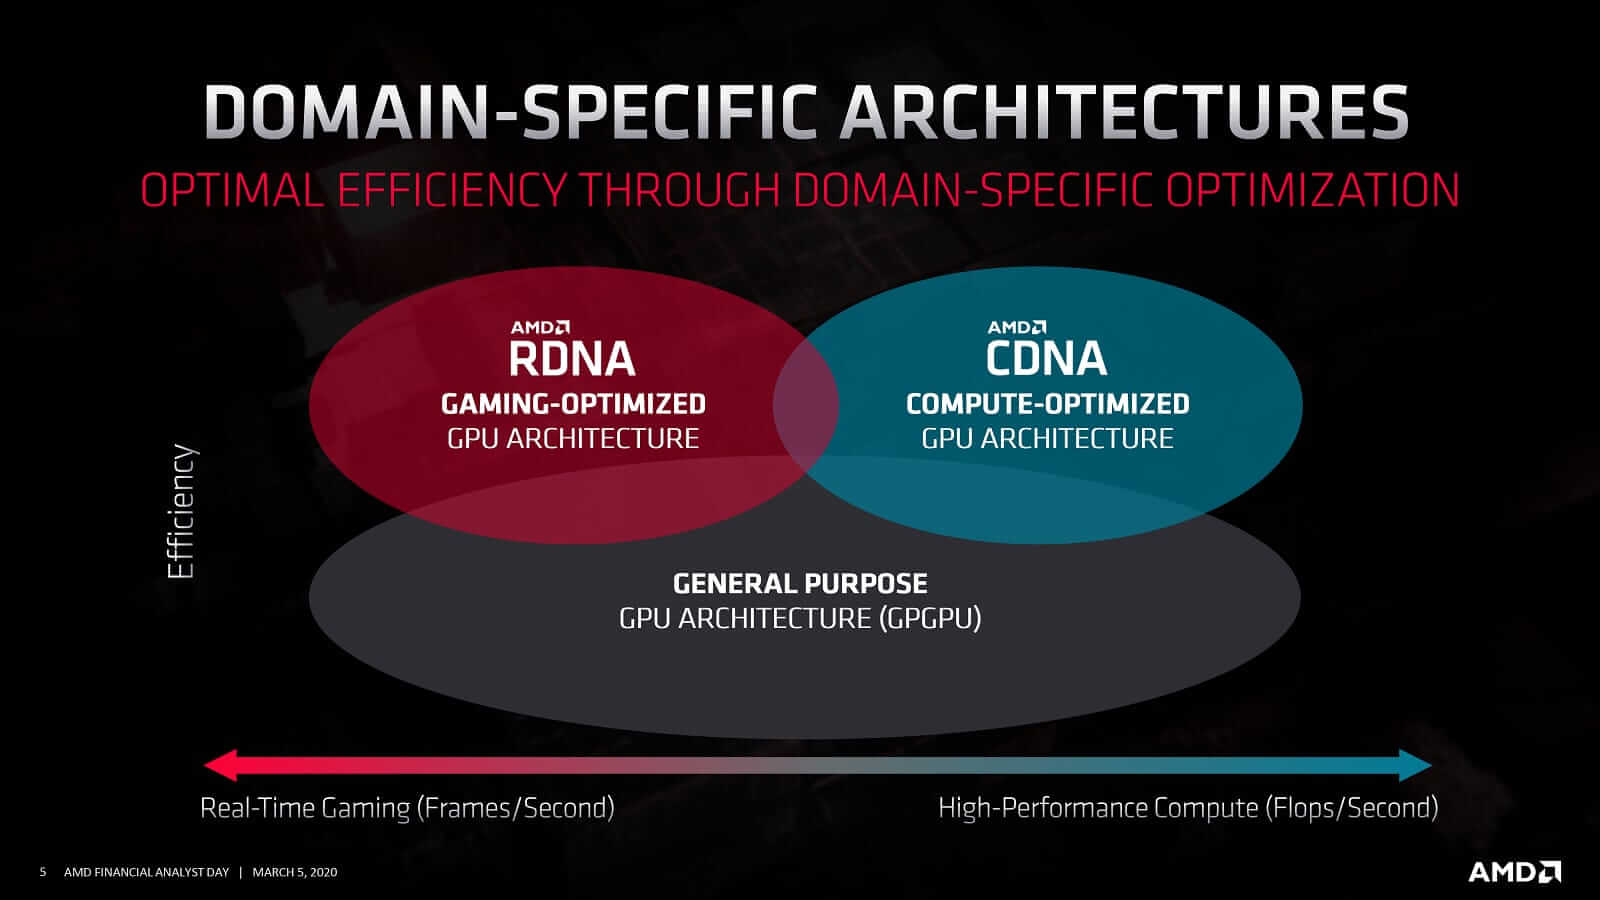 AMD CDNA & RDNA Split